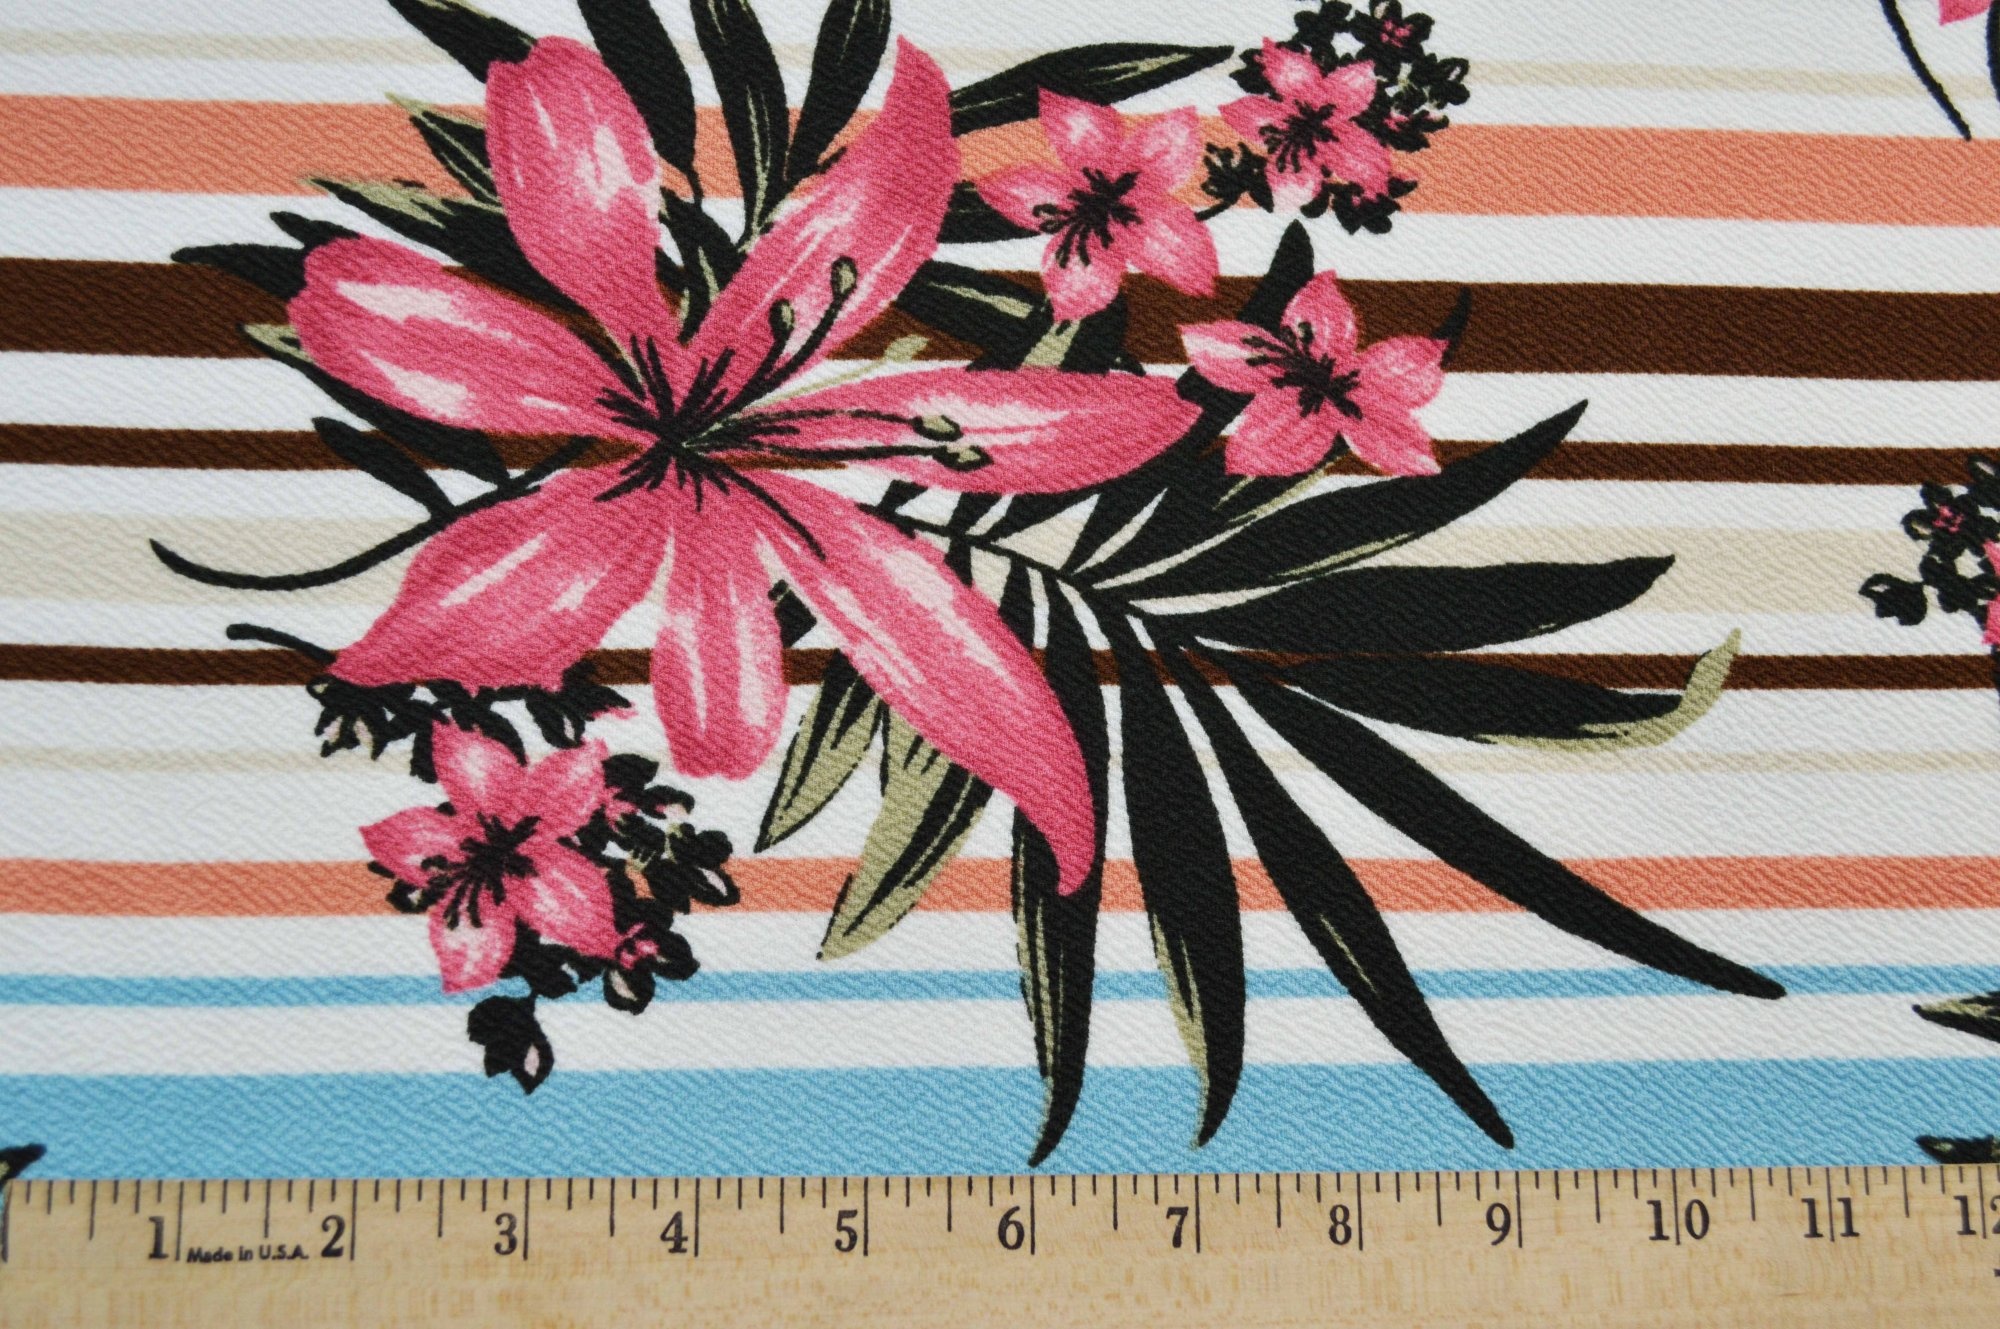 Liverpool Knit - Pink Floral on Stripes